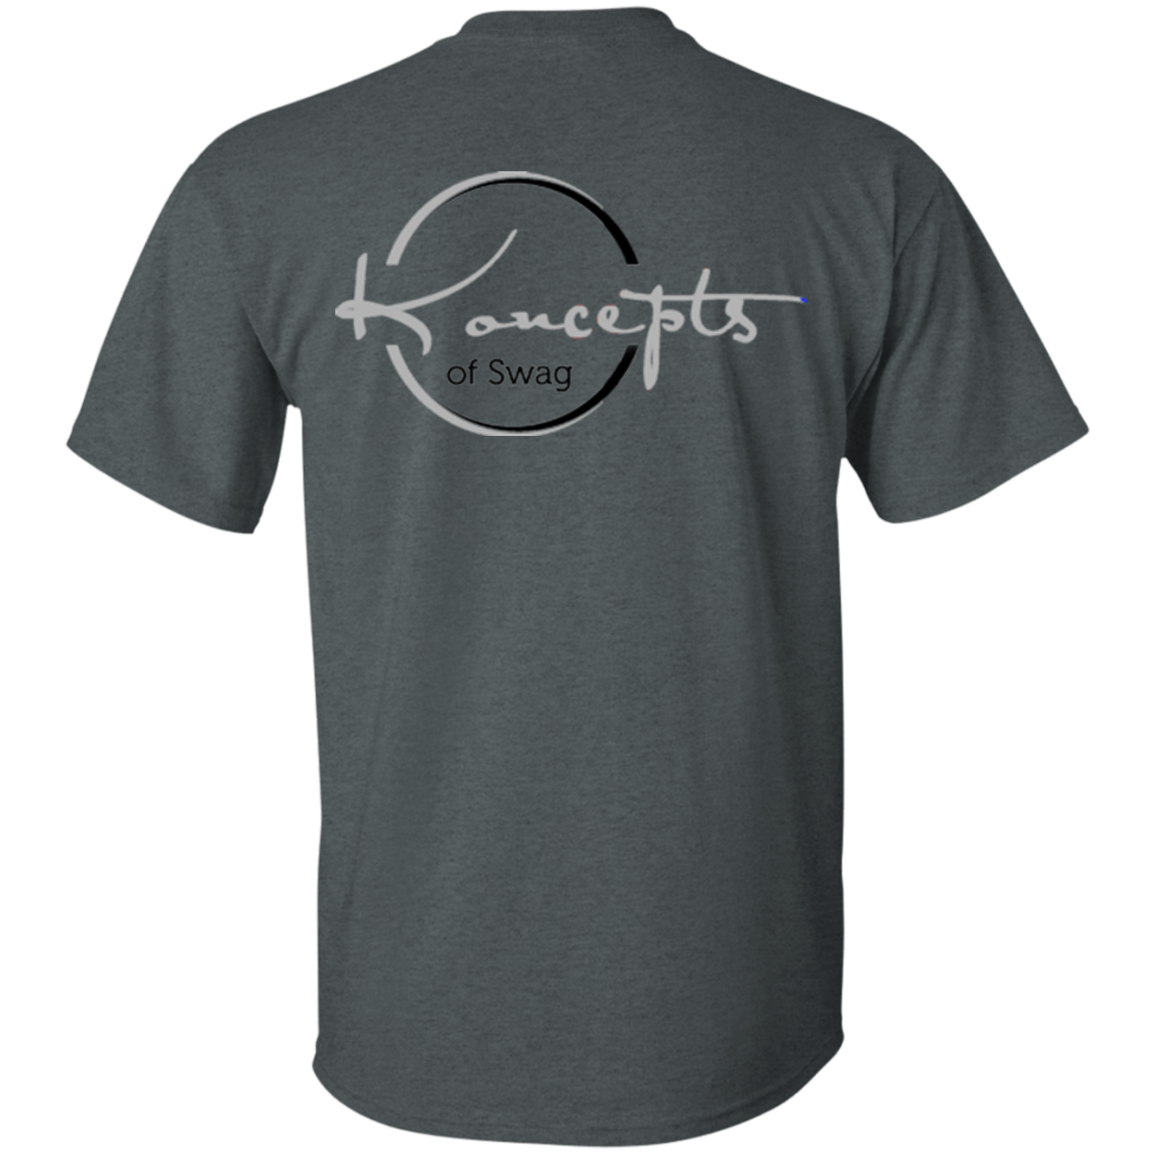 Silver/Black koncepts - Koncepts of Swag